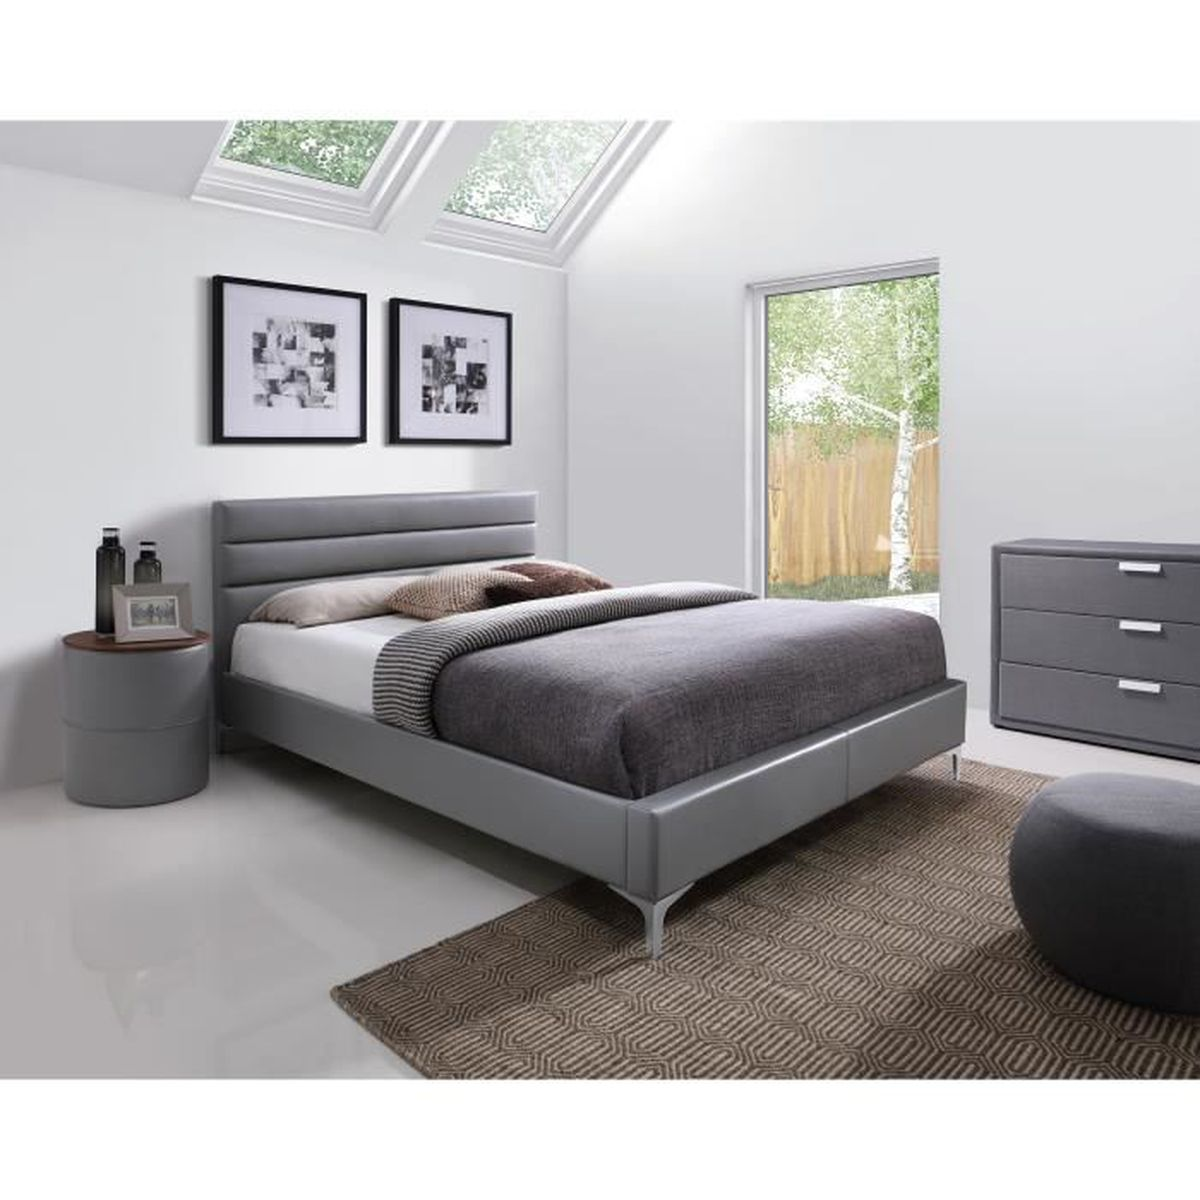 price factory lit adulte design gris thomas 180x200 cm avec sommier meuble en simili cuir. Black Bedroom Furniture Sets. Home Design Ideas